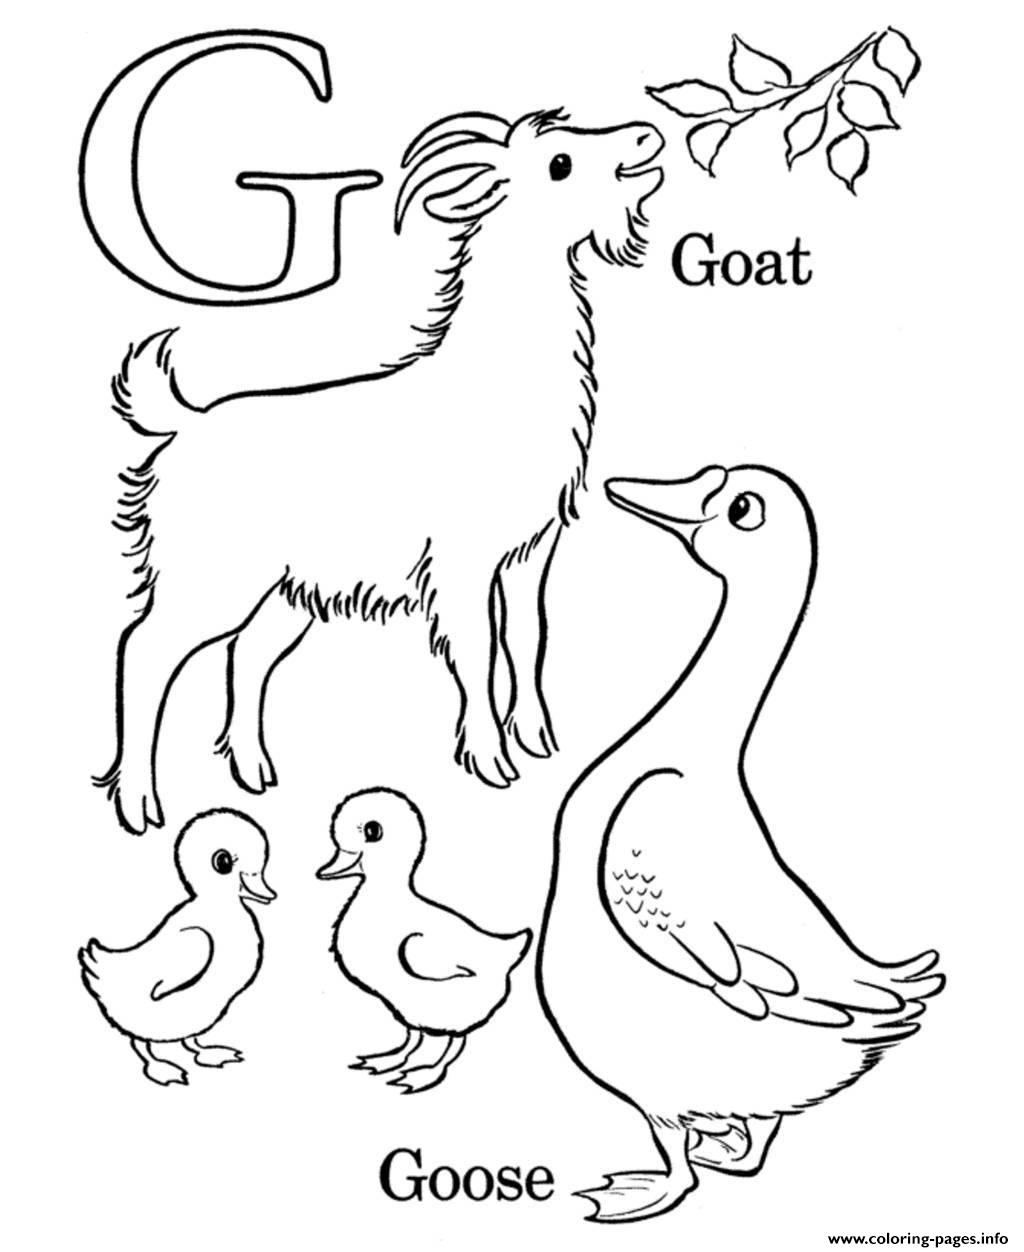 coloring pages alphabet g for goat and goose08eb coloring pages